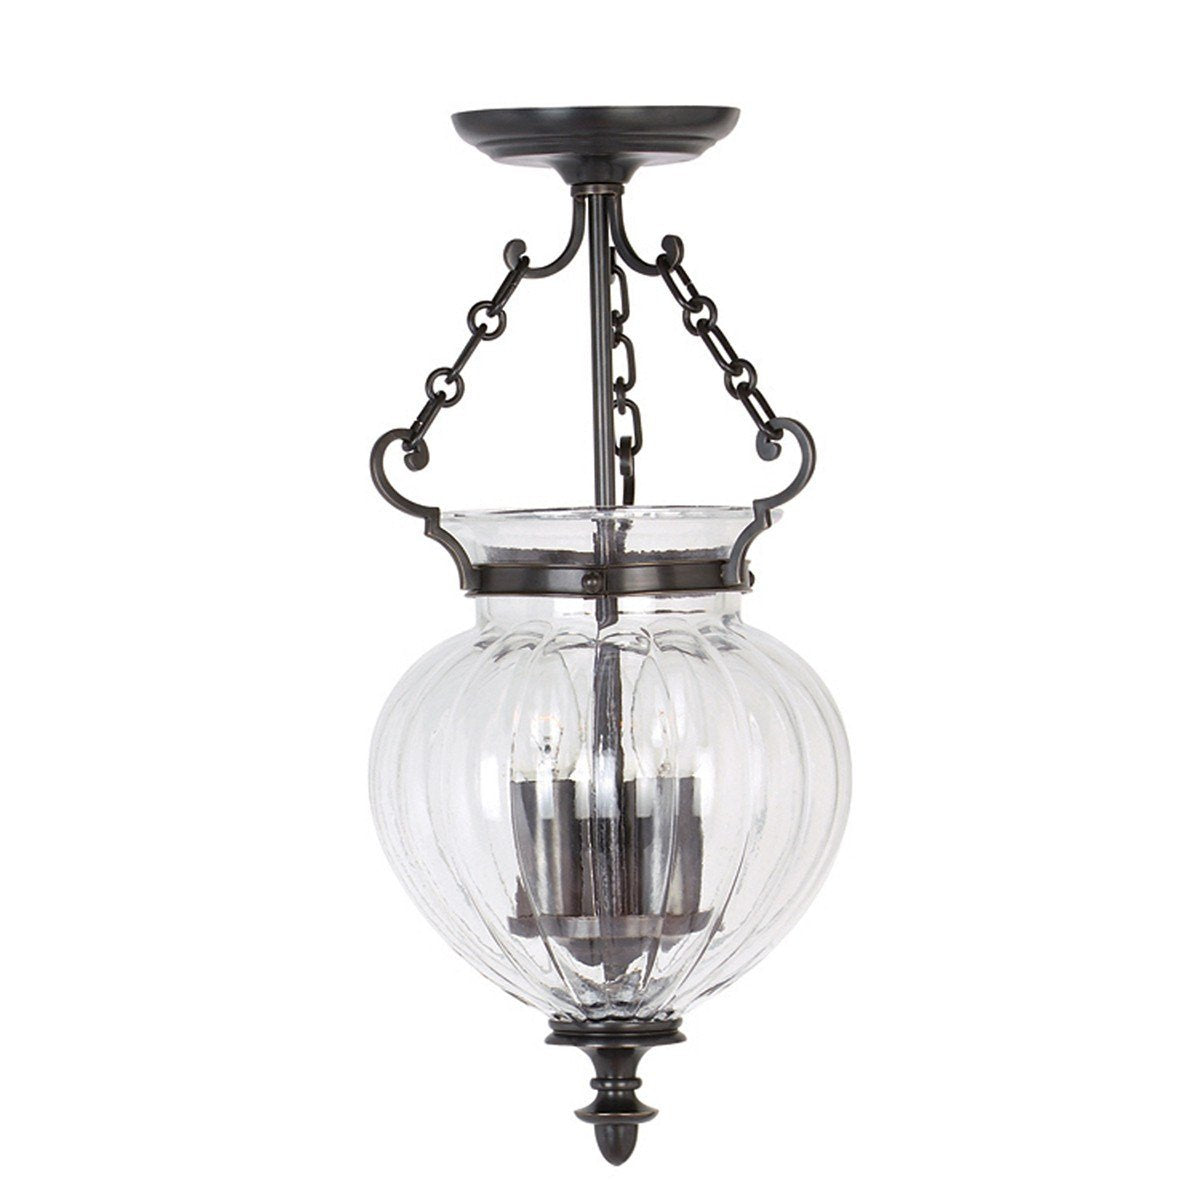 Finsbury Park Pendant Small - London Lighting - 1